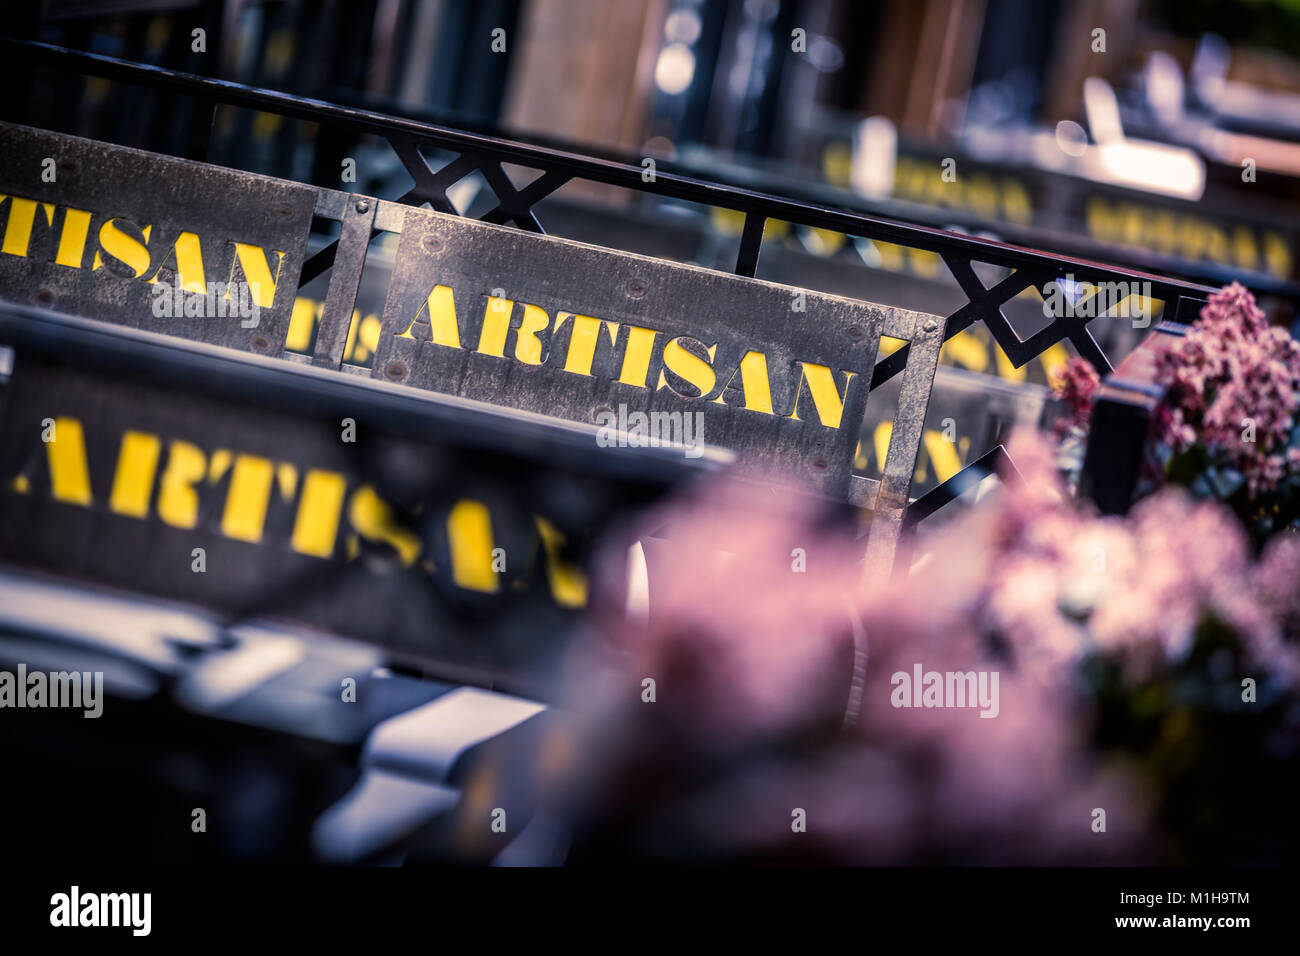 Artisan, Avenue North, 18-22 Bridge St, Manchester - Stock Image